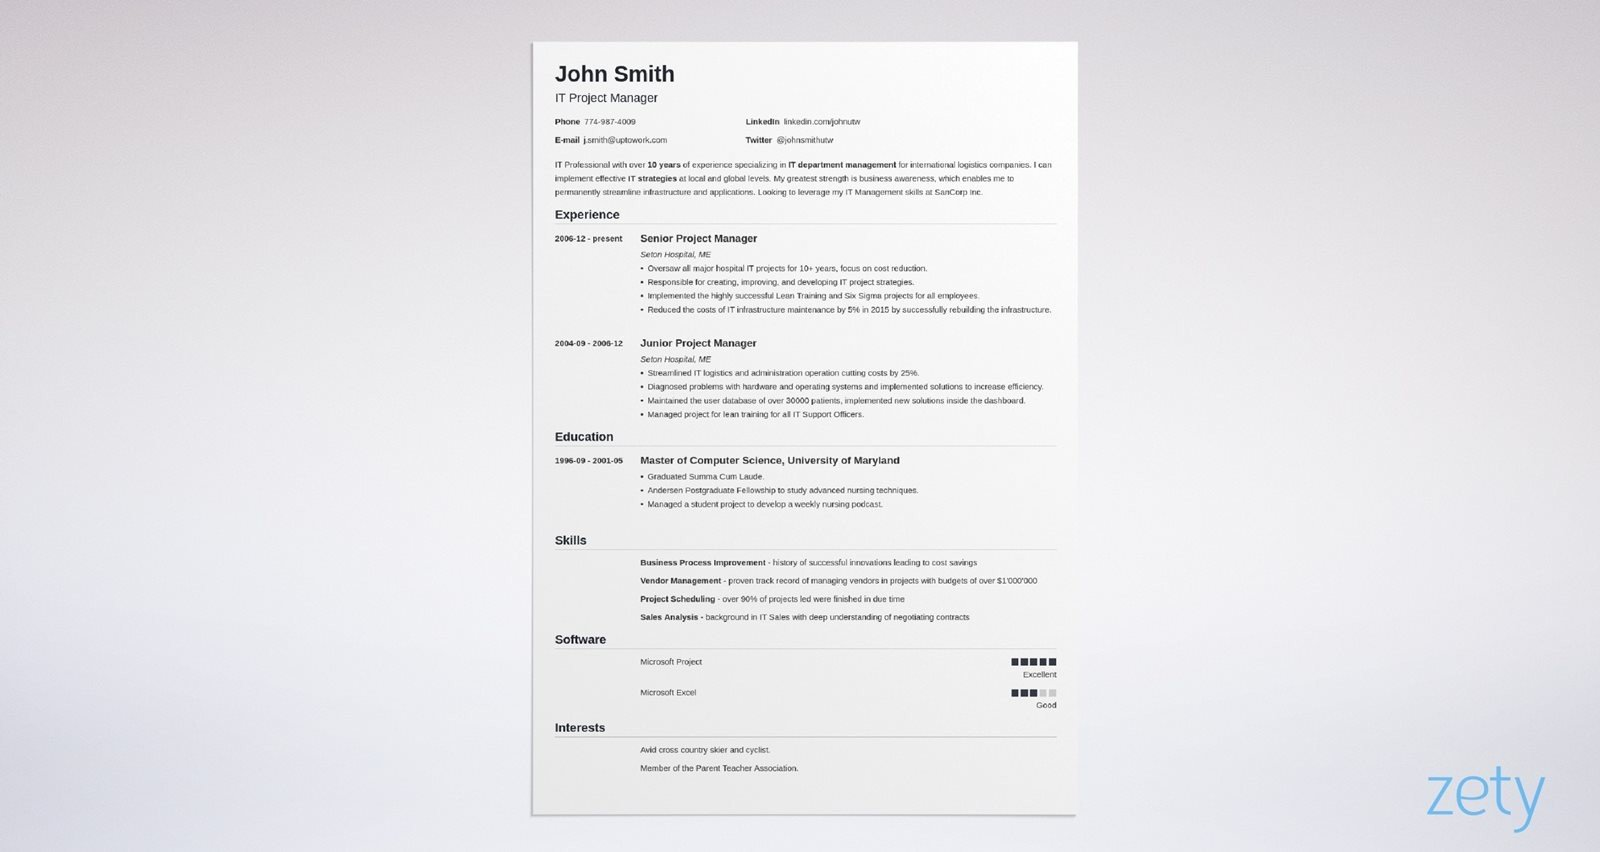 Fill In Resume Template from cdn-images.zety.com